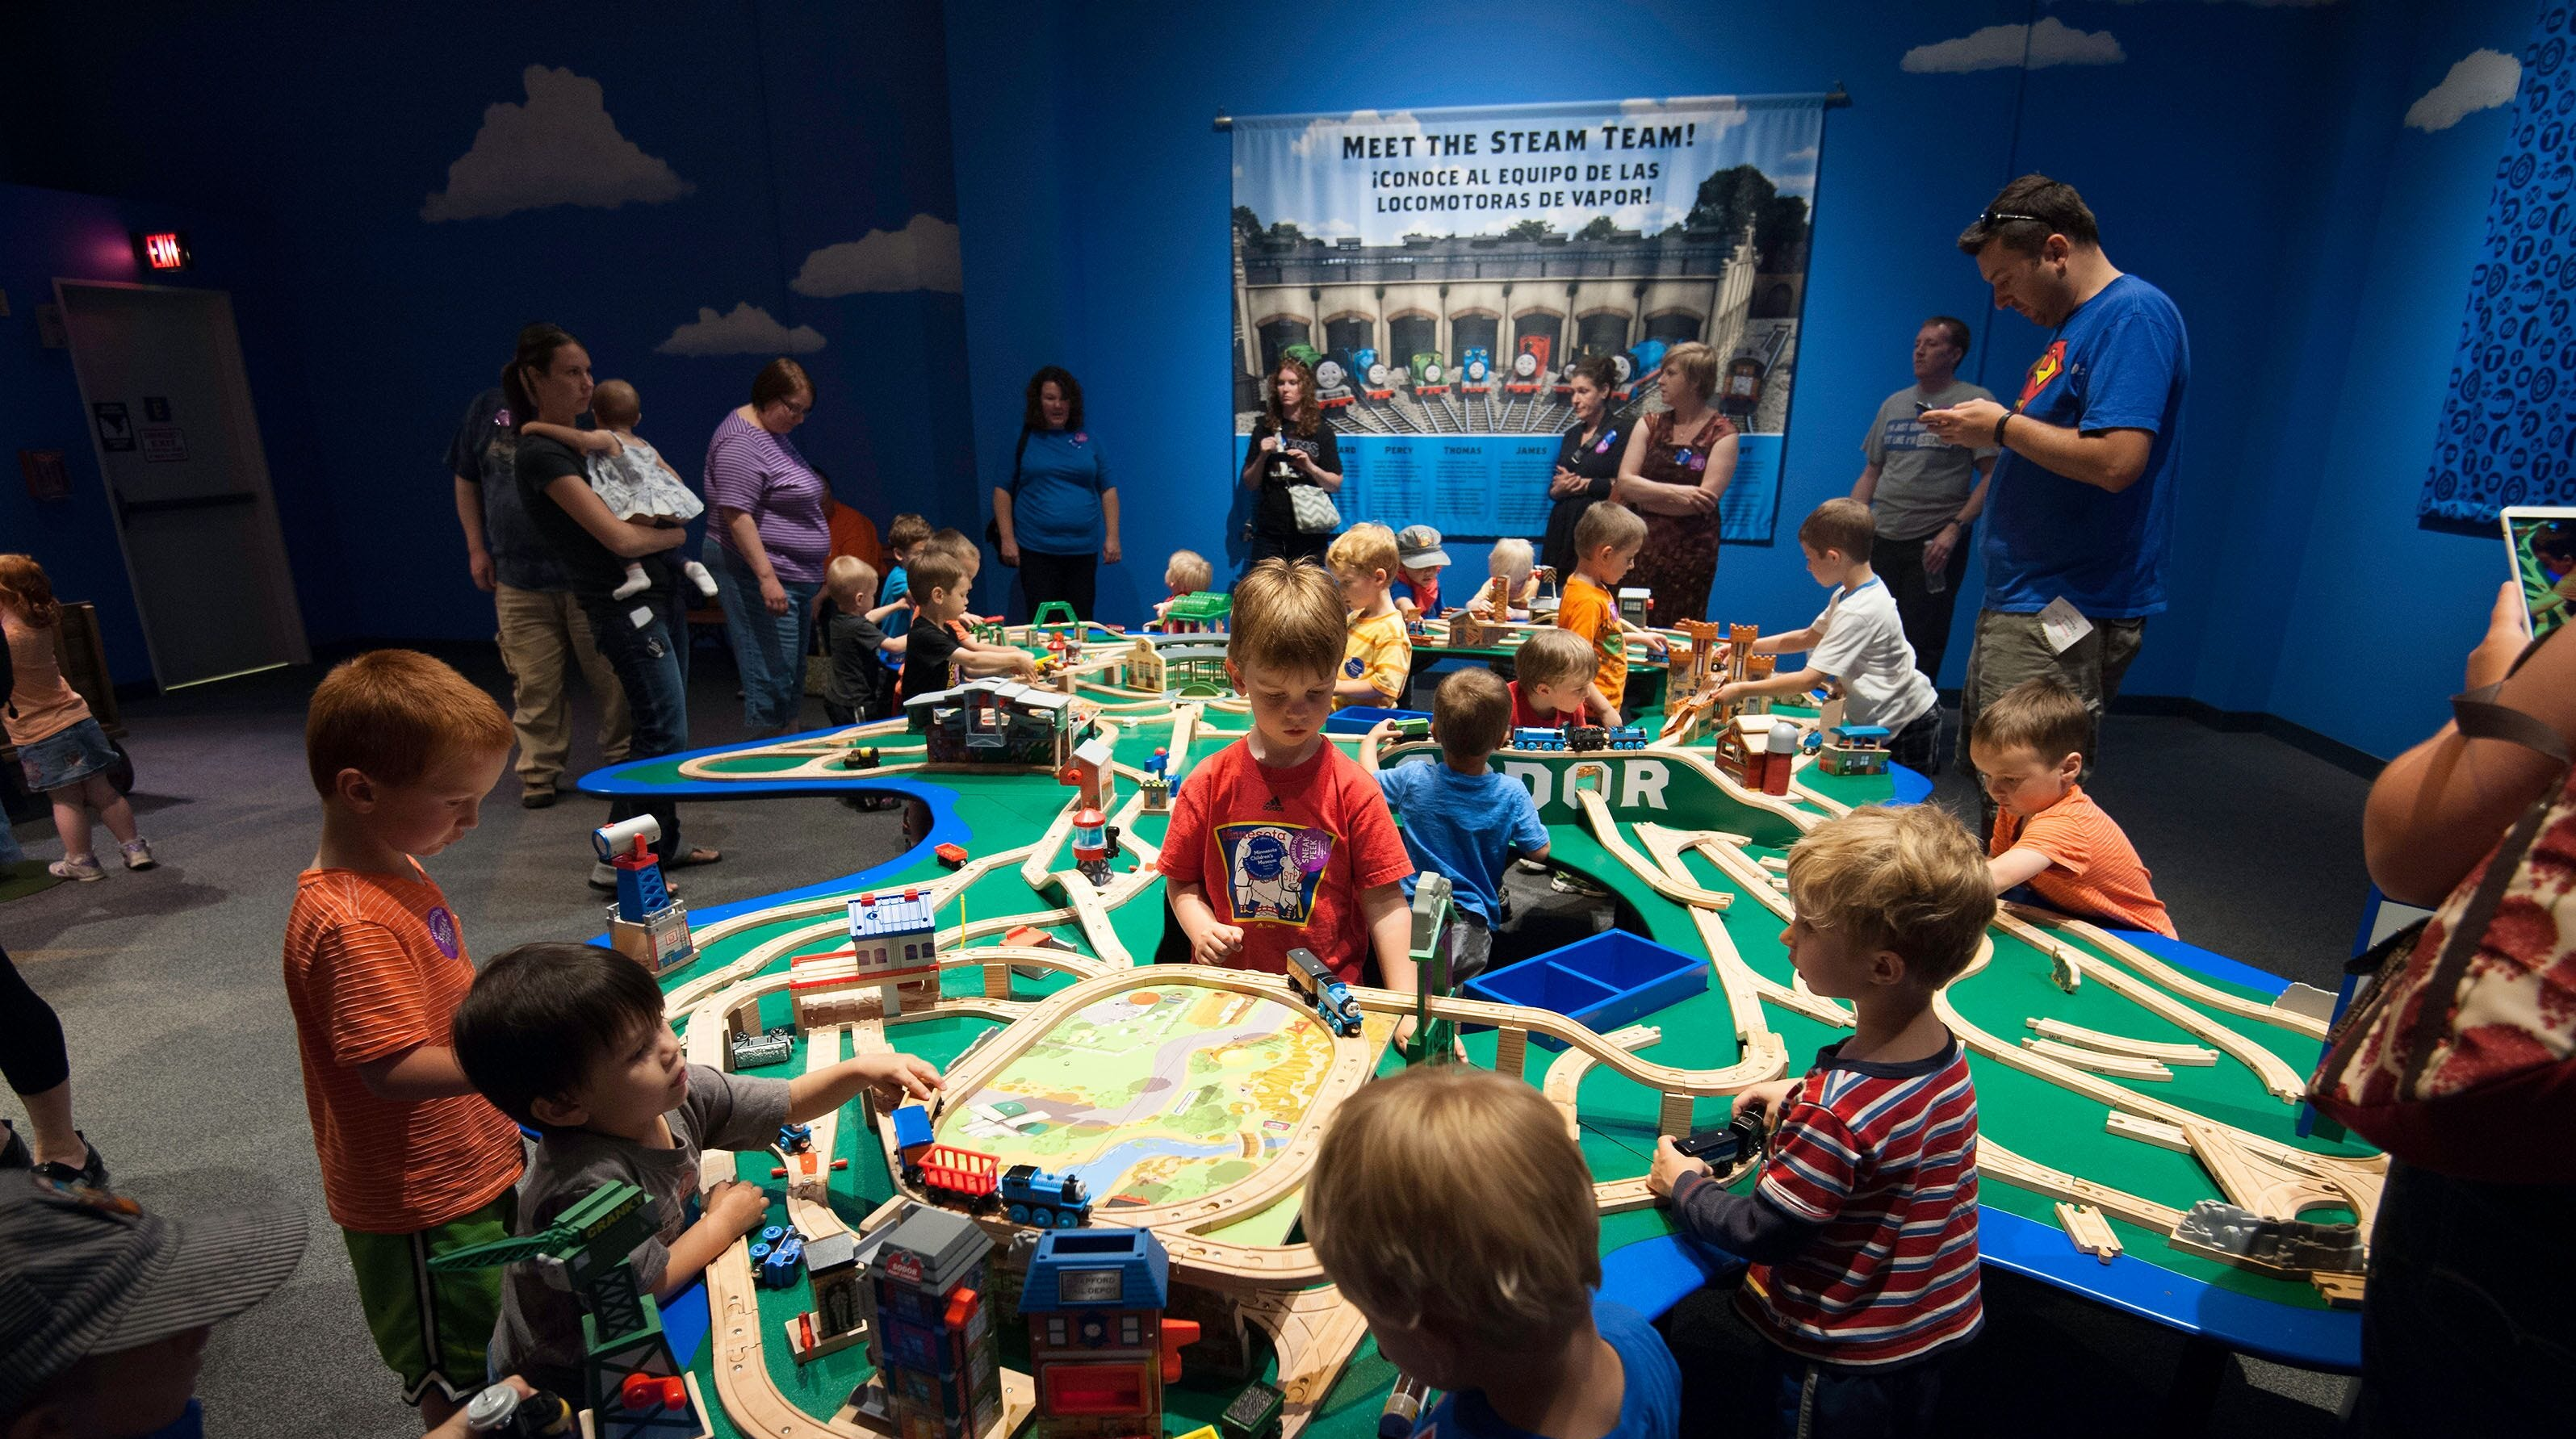 Thomas & Friends: Explore the Rails opens May 25 at the Upcountry History Museum, bringing hands-on fun for fans of all ages.